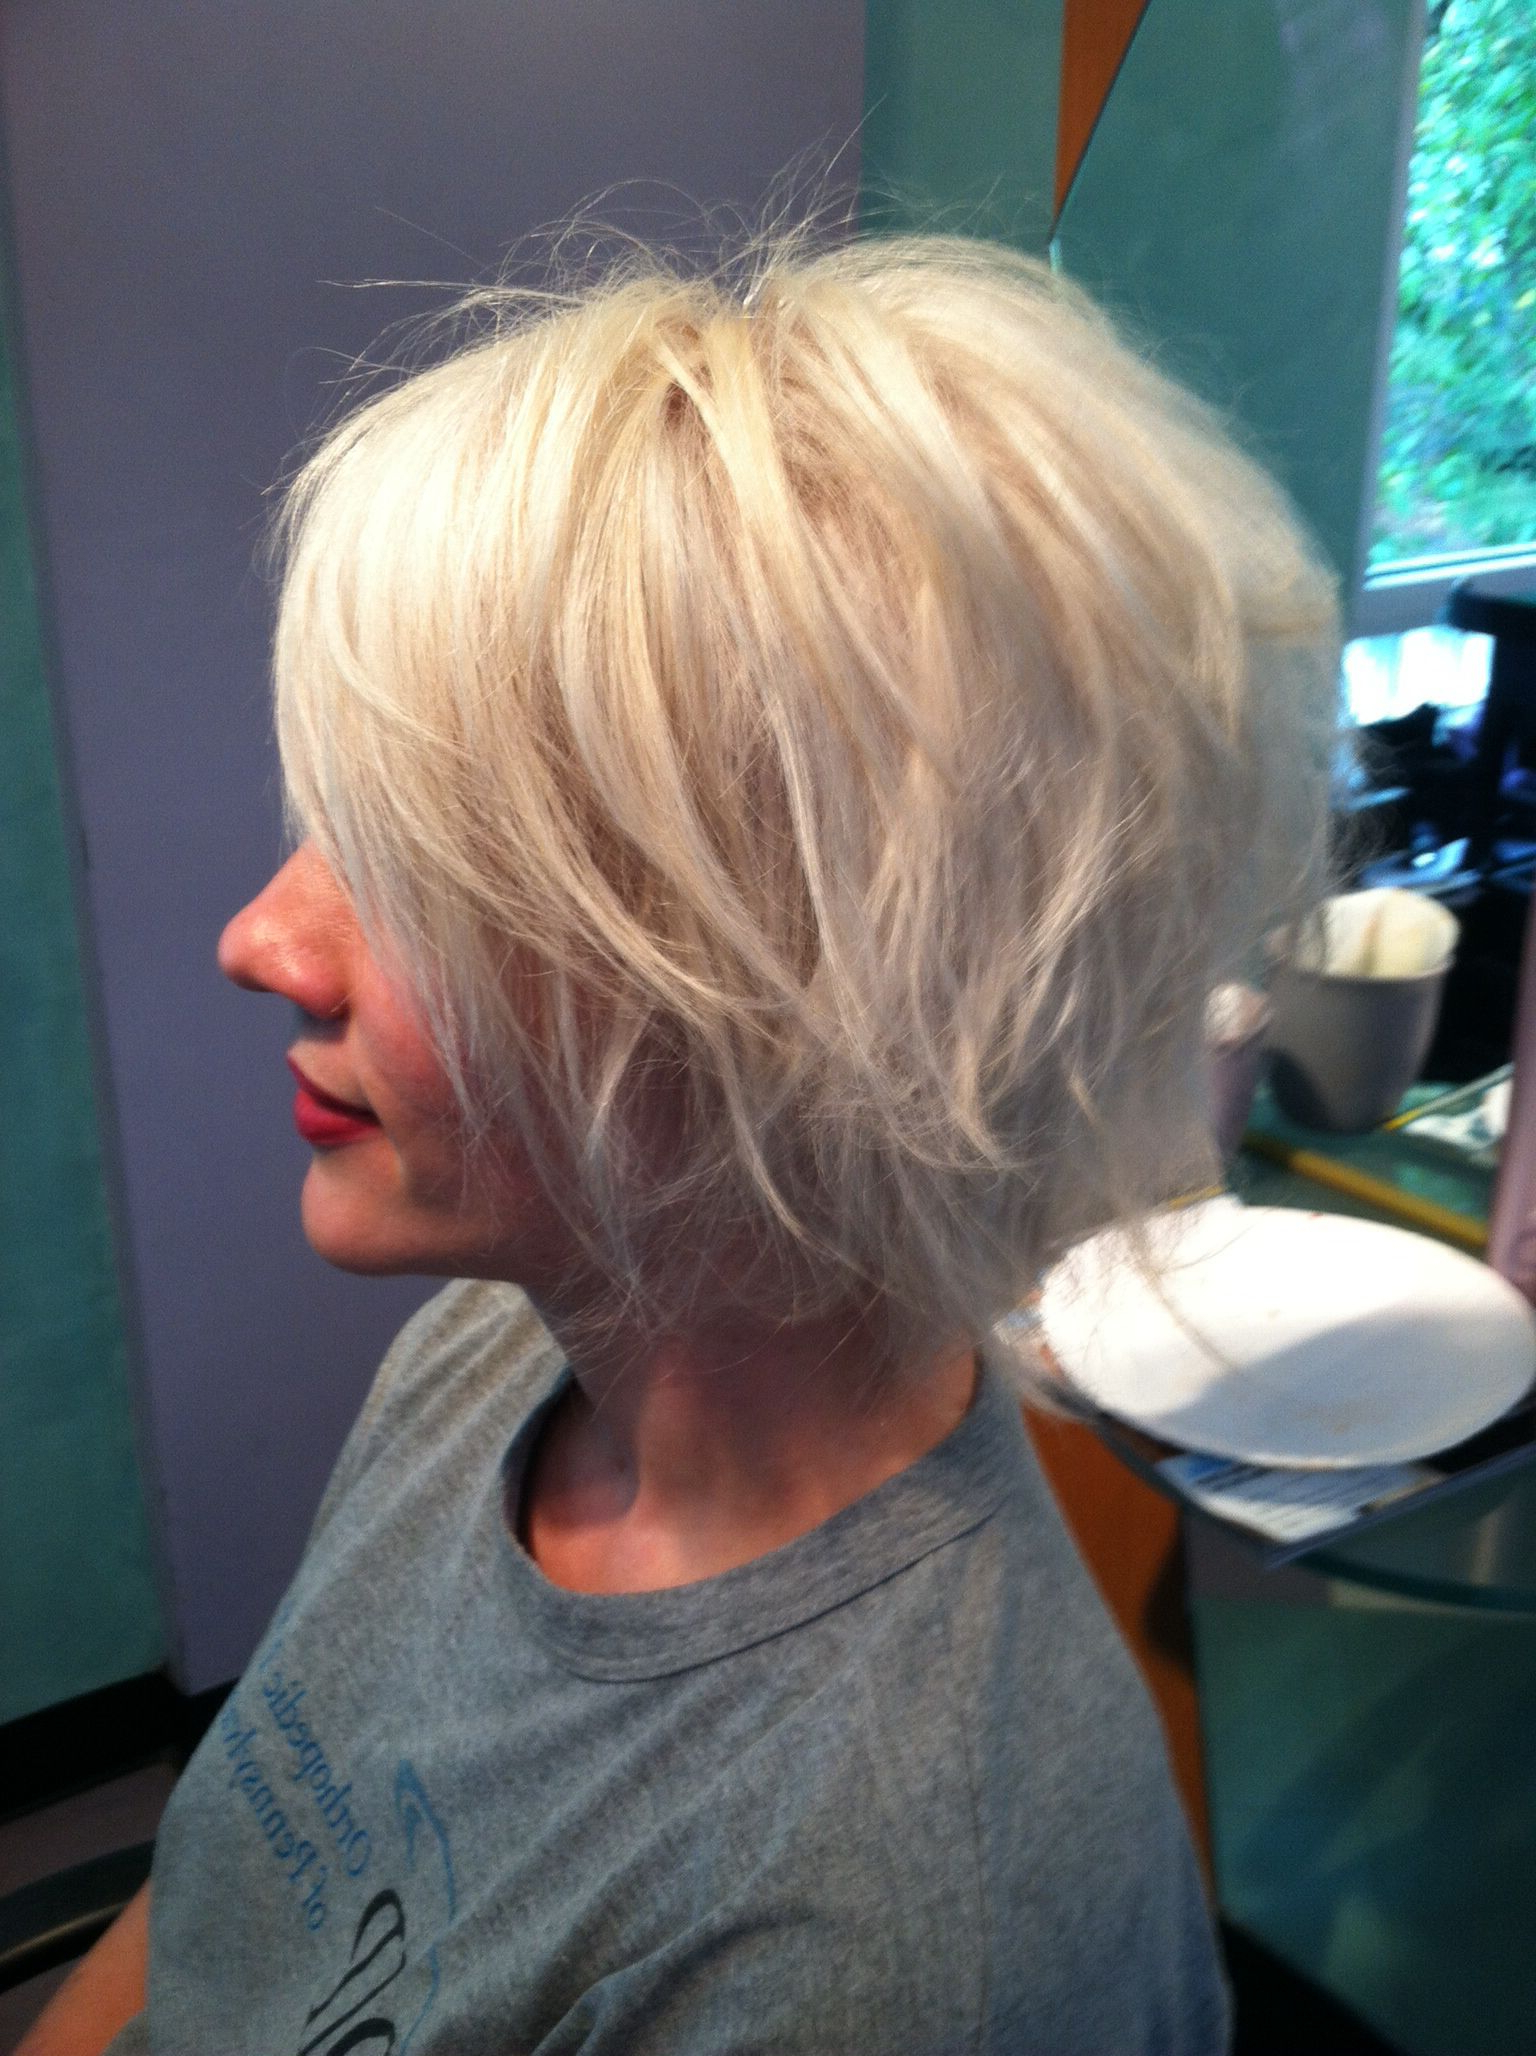 Ann's Platinum Layered Bob | Hairkelly O'connor | Pinterest Regarding Layered Platinum Bob Hairstyles (Gallery 7 of 20)